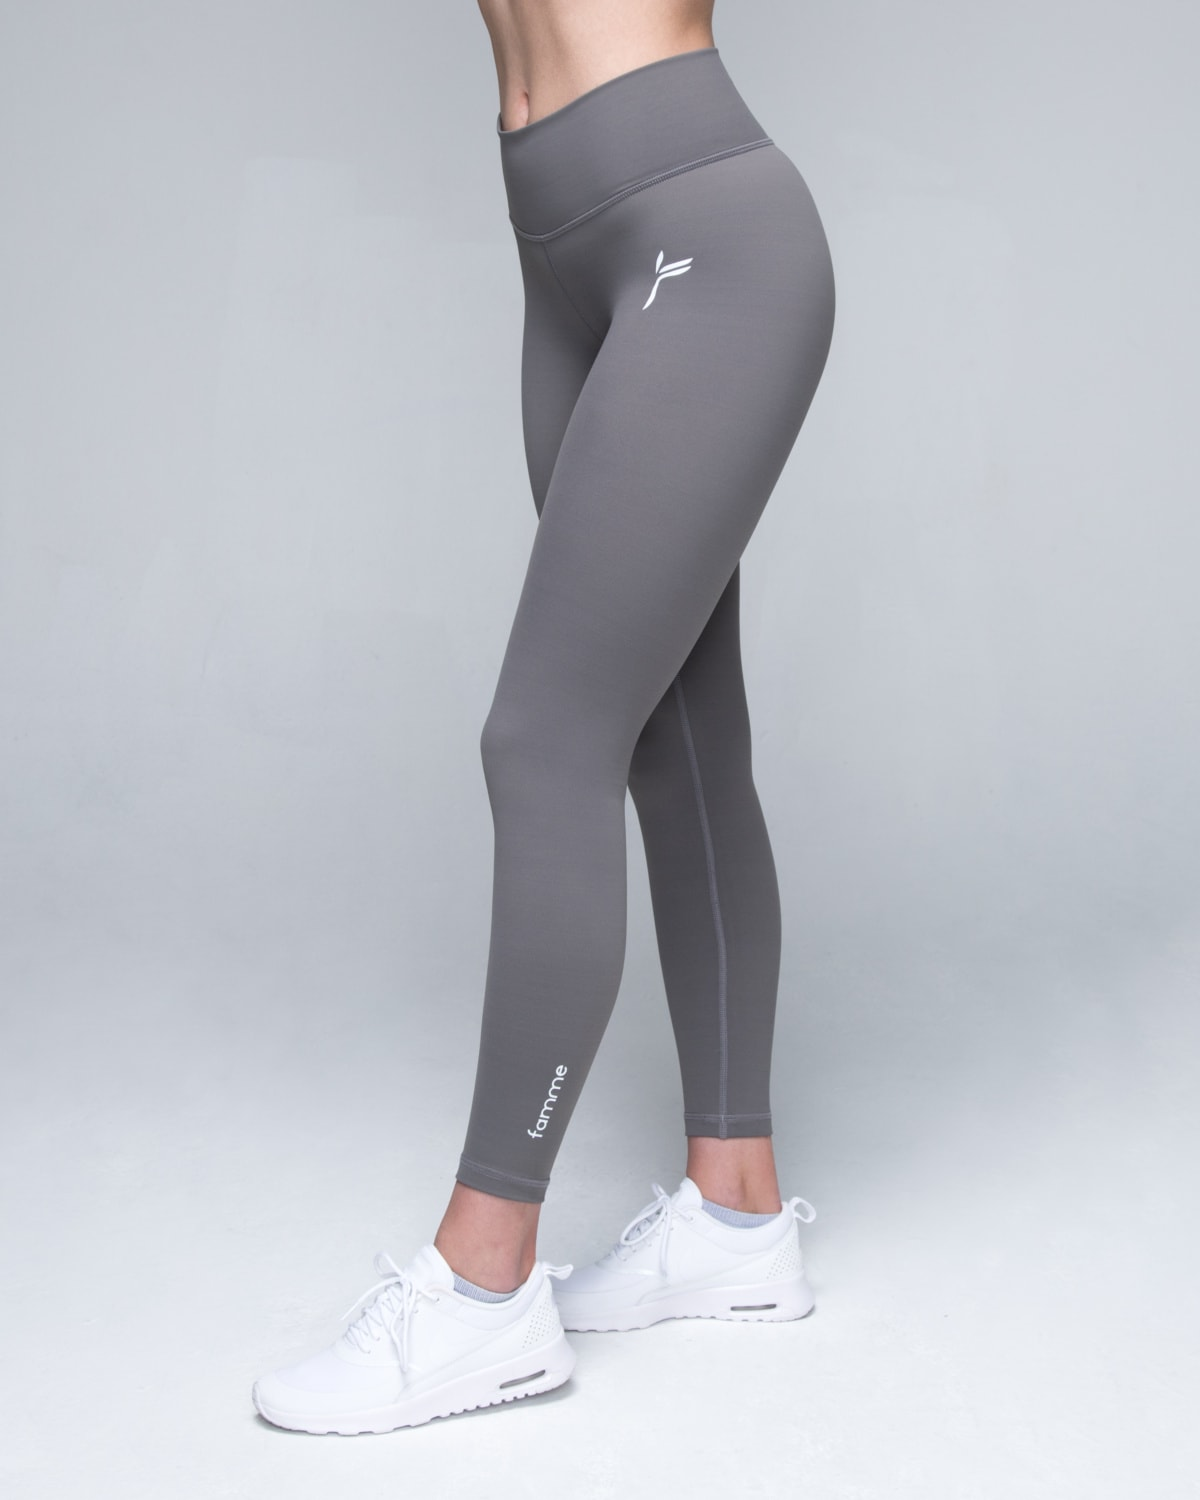 Famme Grey Essential Tights3